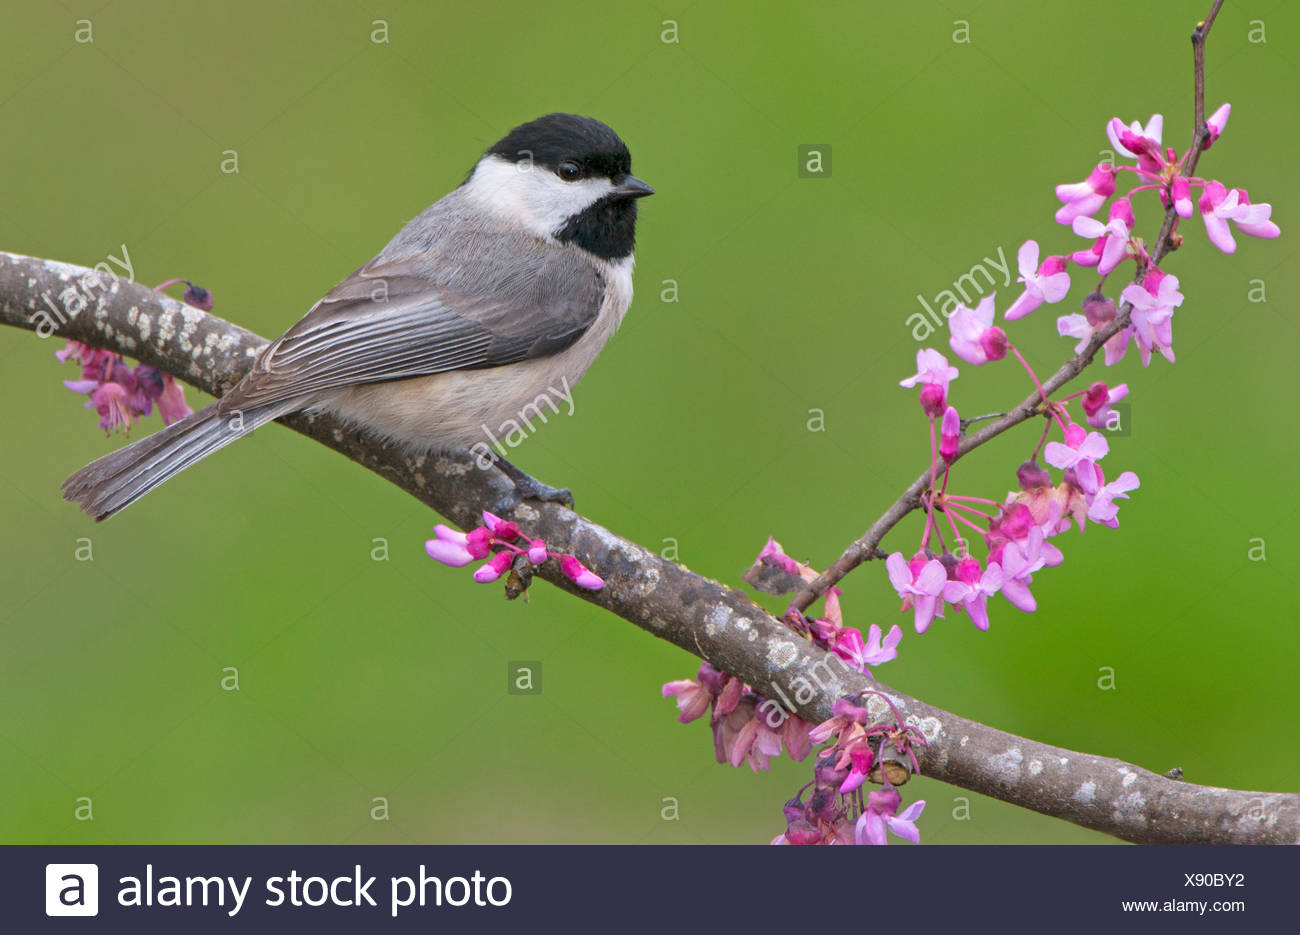 Carolina Chickadee, Poecile carolinensis, Houston Texas - Stock Image